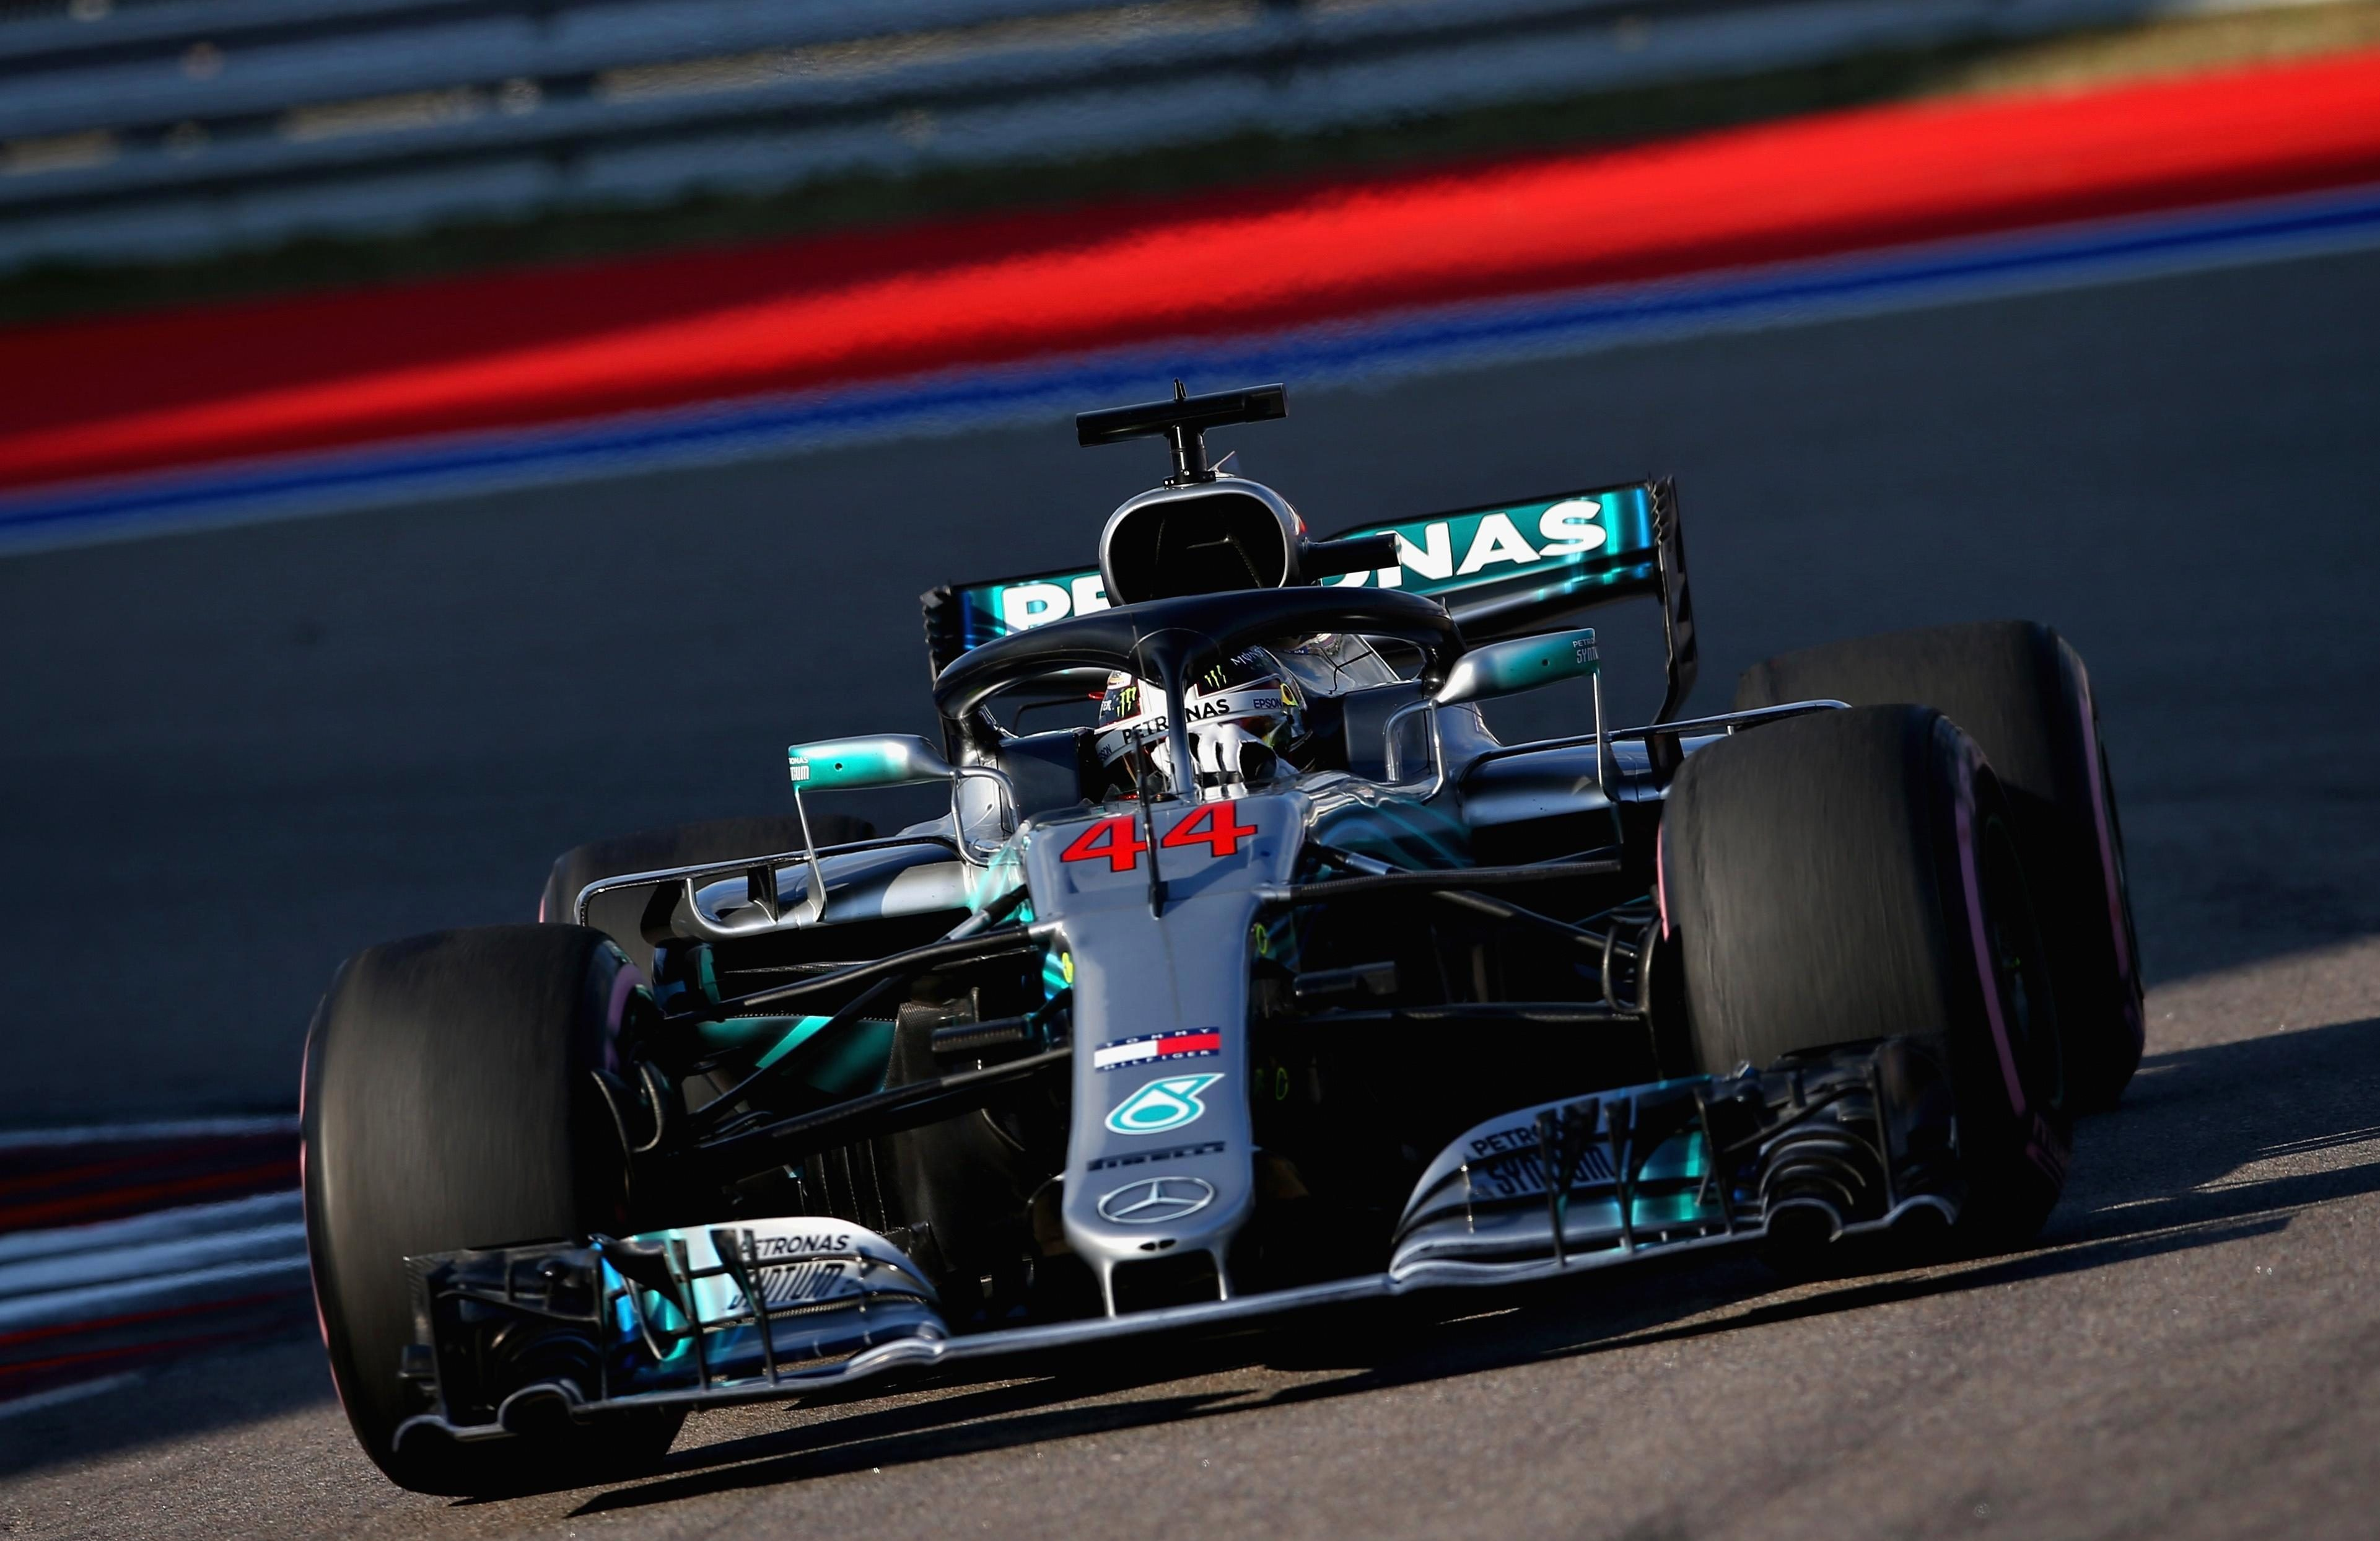 Lewis Hamilton could not outperform his team-mate but is still well positioned